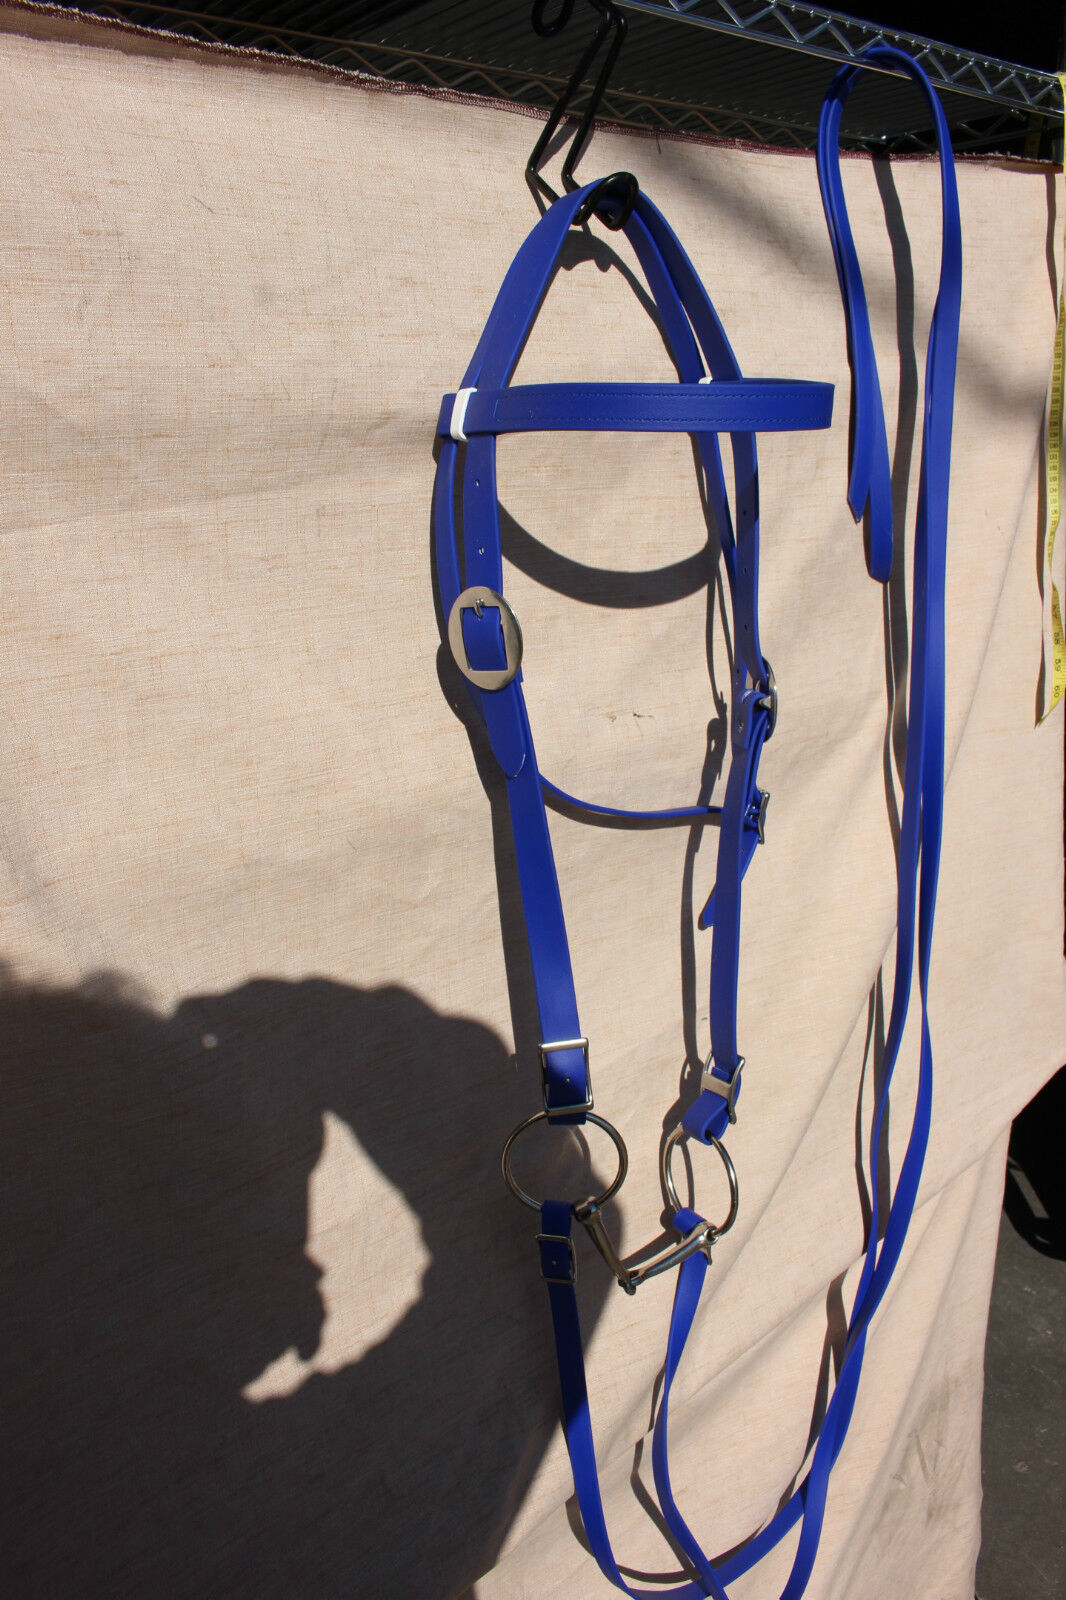 New  royal bluee Weaver softgrip draft horse riding bridle with reins and bit  sale online discount